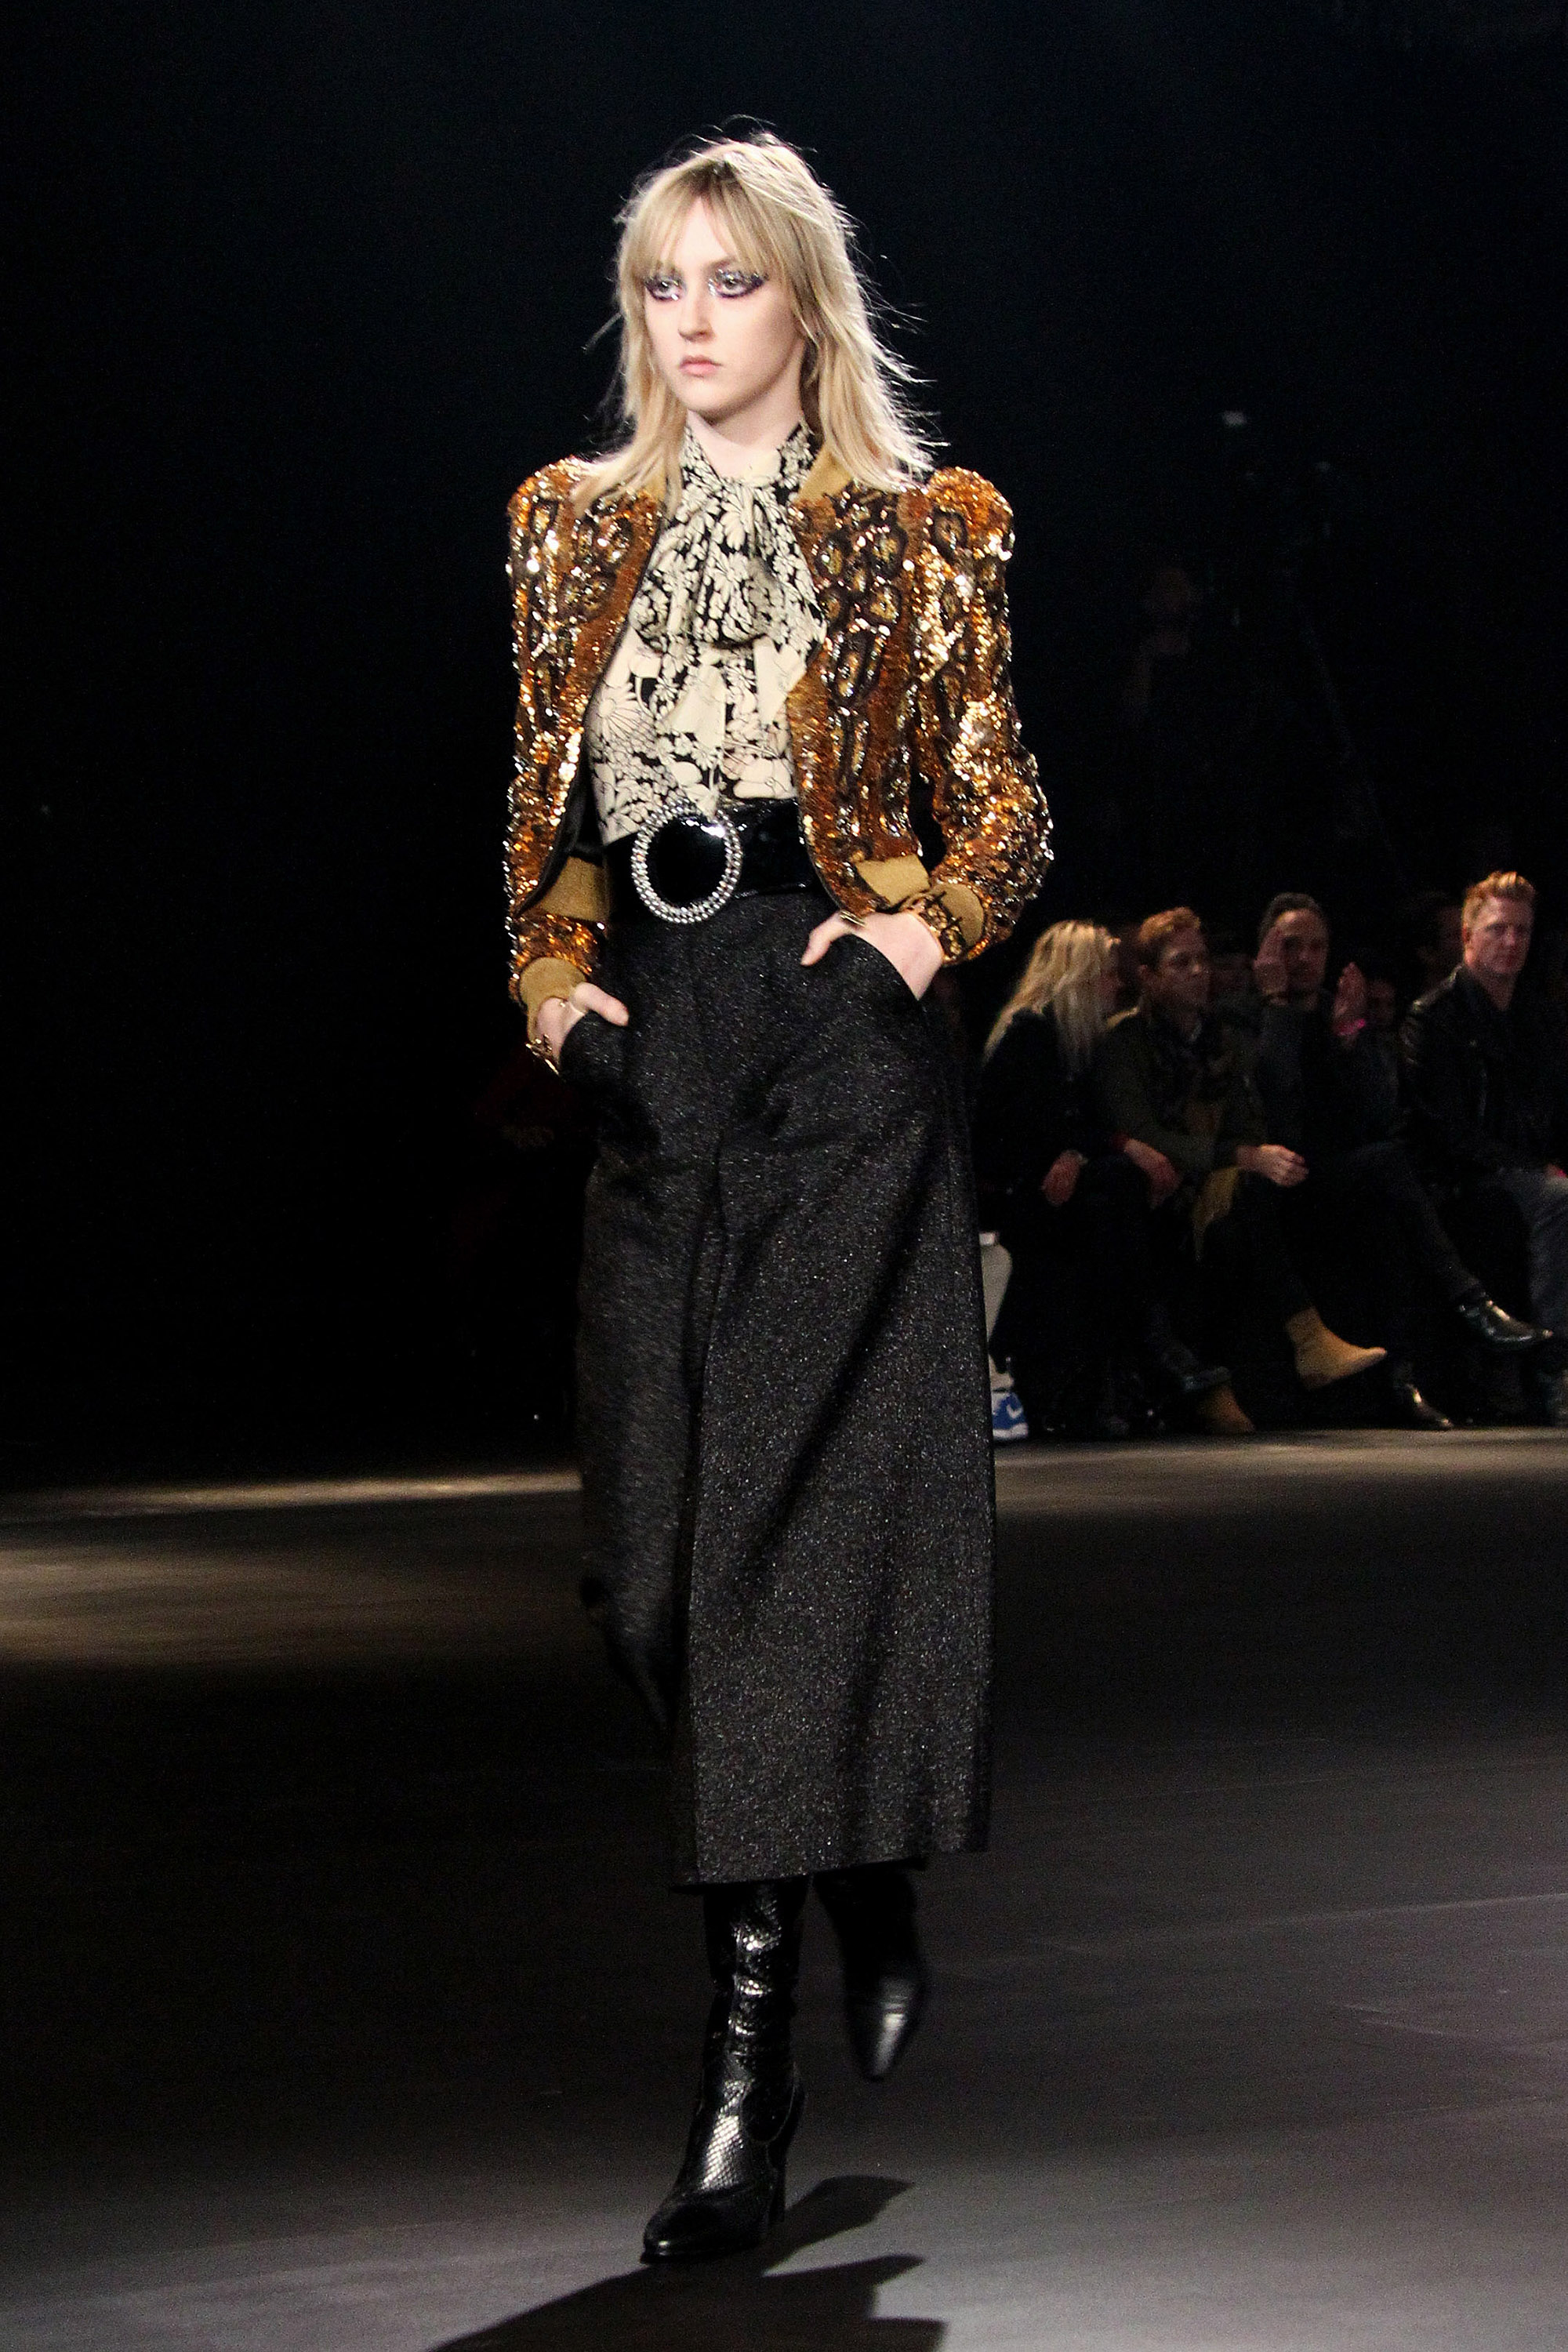 """<p>Saint Laurent showcased a collection inspired by Californian culture and Hedi Slimane's love of music at Hollywood's iconic Palladium overnight. The runway also boasted a <a href=""""http://honey.ninemsn.com.au/2016/02/11/15/44/fashion-and-music-worlds-collide-at-saint-laurent-at-the-palladium"""" target=""""_blank"""">star-studded front row of musicians</a> including Justin Bieber, Lady Gaga, Lenny Kravtiz and Courtney Love.</p><p></p>"""